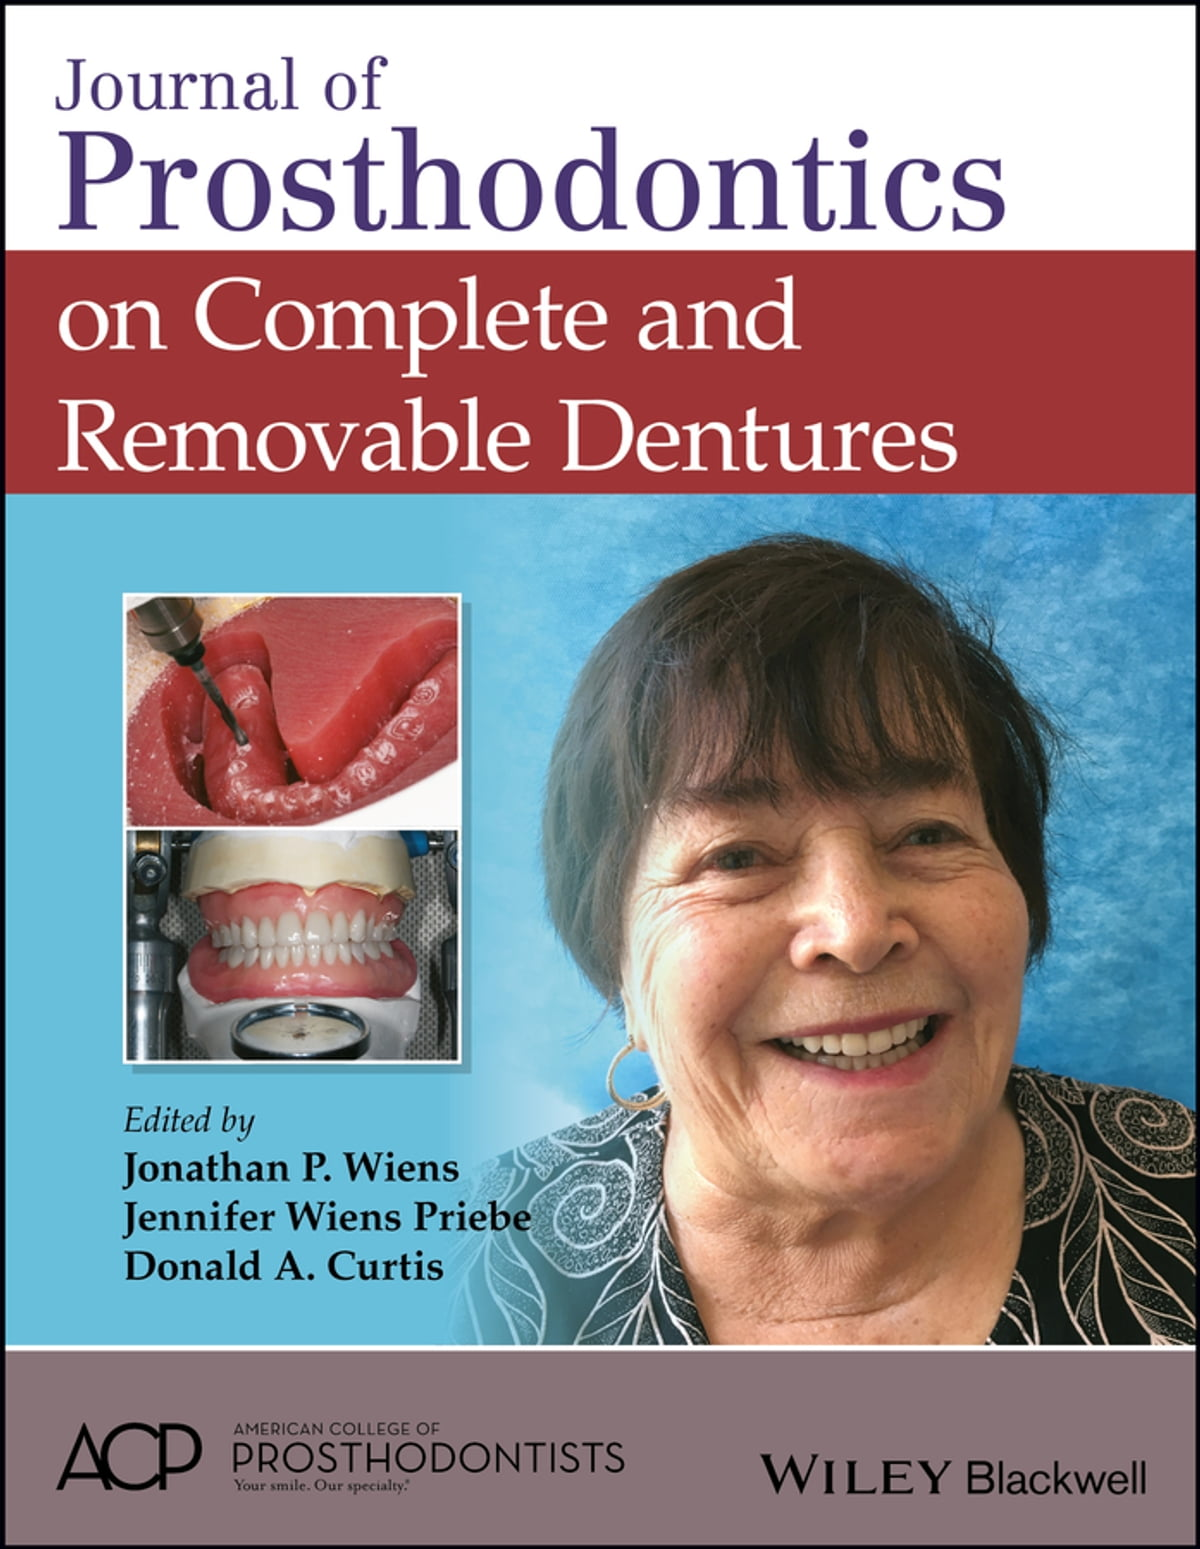 thesis on prosthodontics Precision and personalization our prosthodontics experts can research and write a new, one-of-a-kind, original dissertation, thesis, or research proposal—just for you—on the precise prosthodontics topic of your choice.